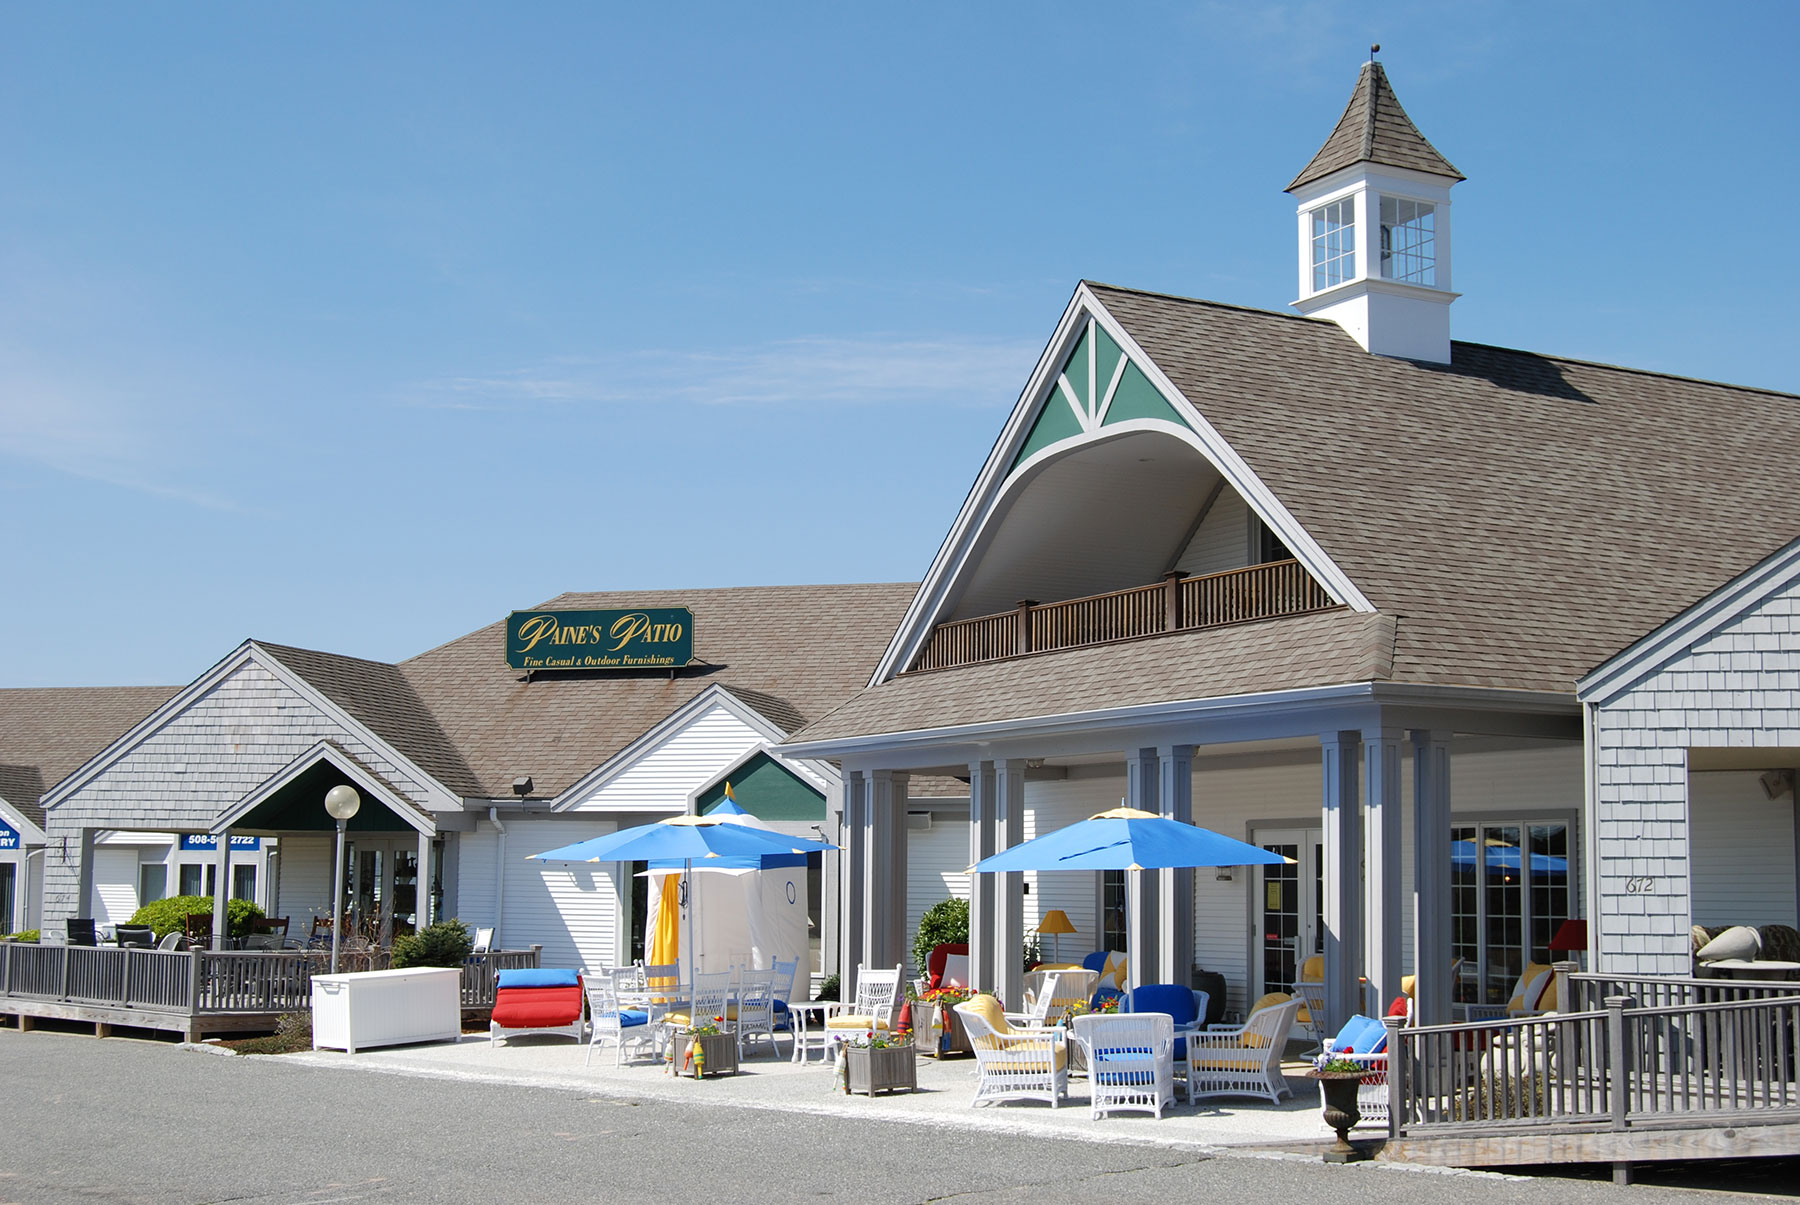 Paine's-Patio-Cape-Cod-Store